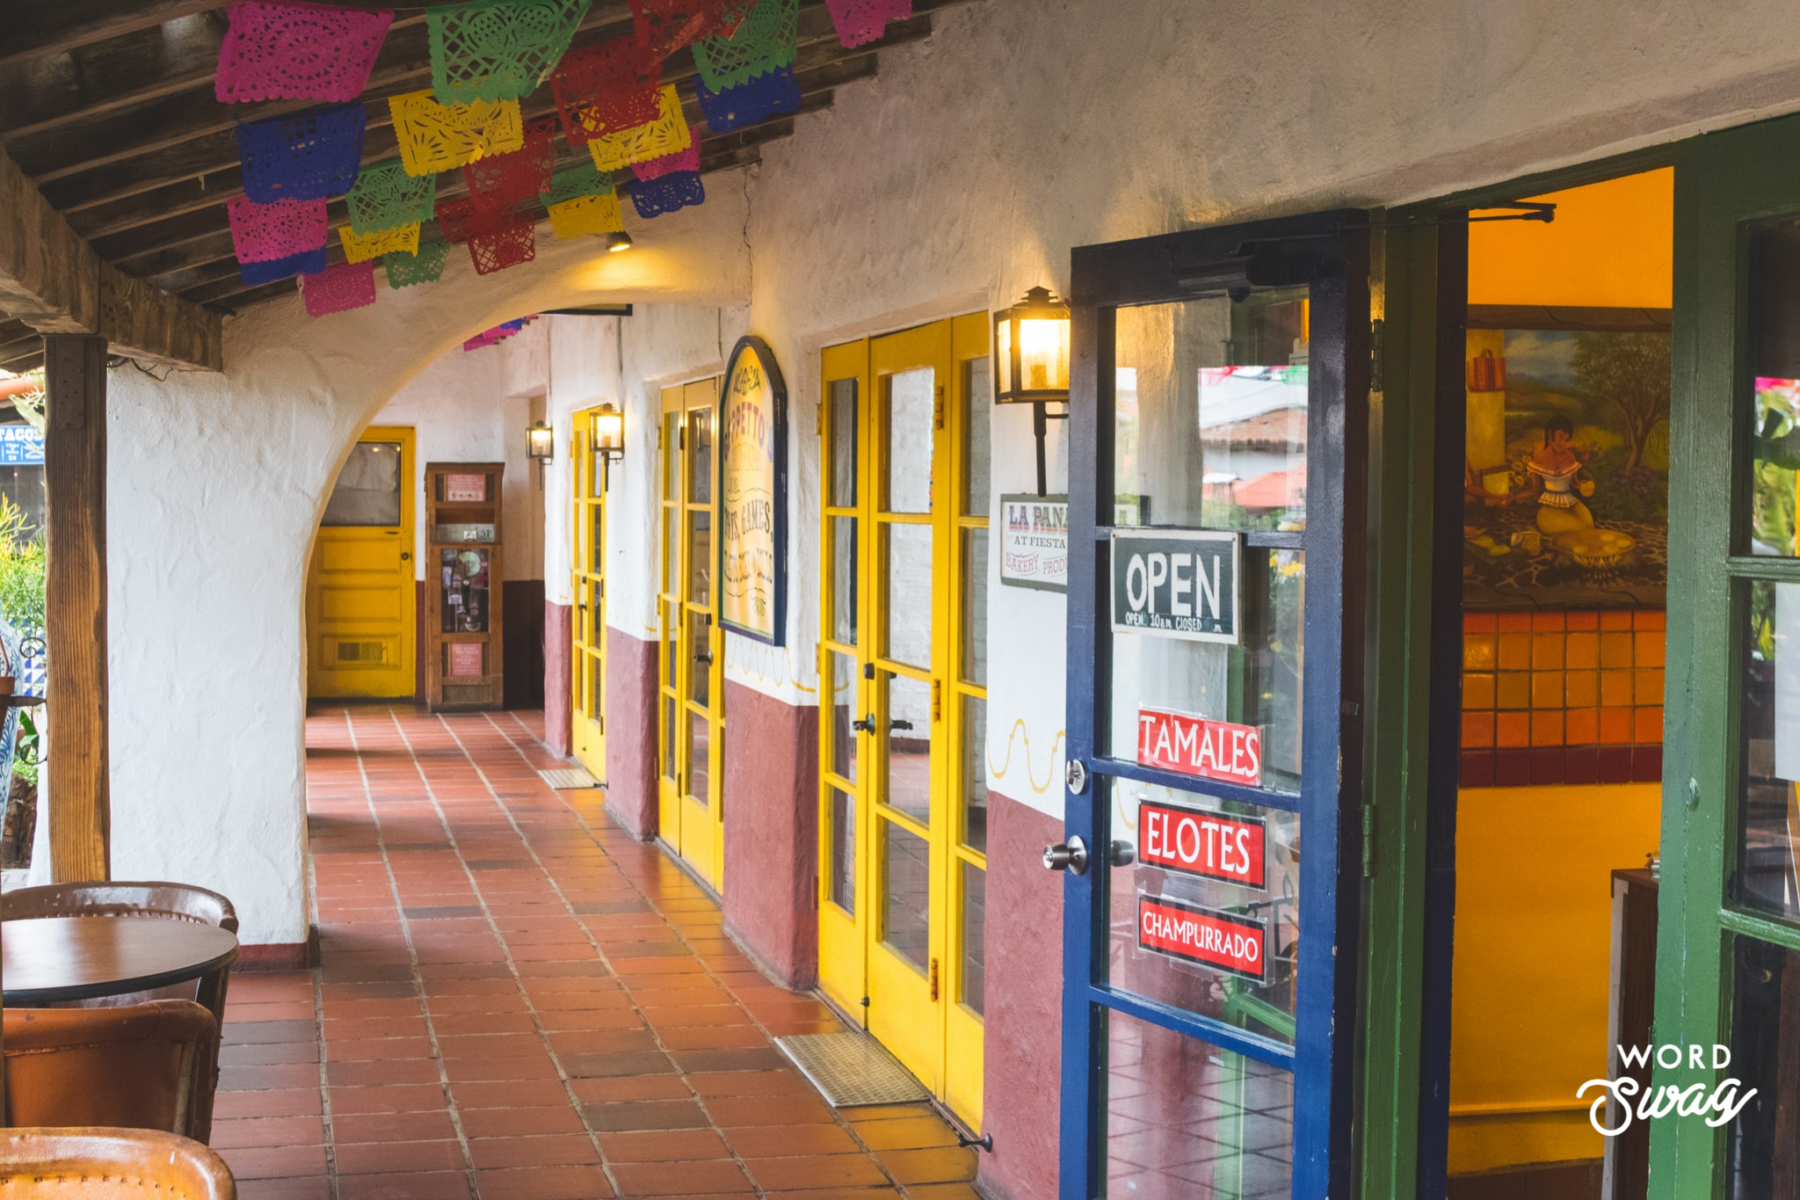 Things to do in Old Town San Diego